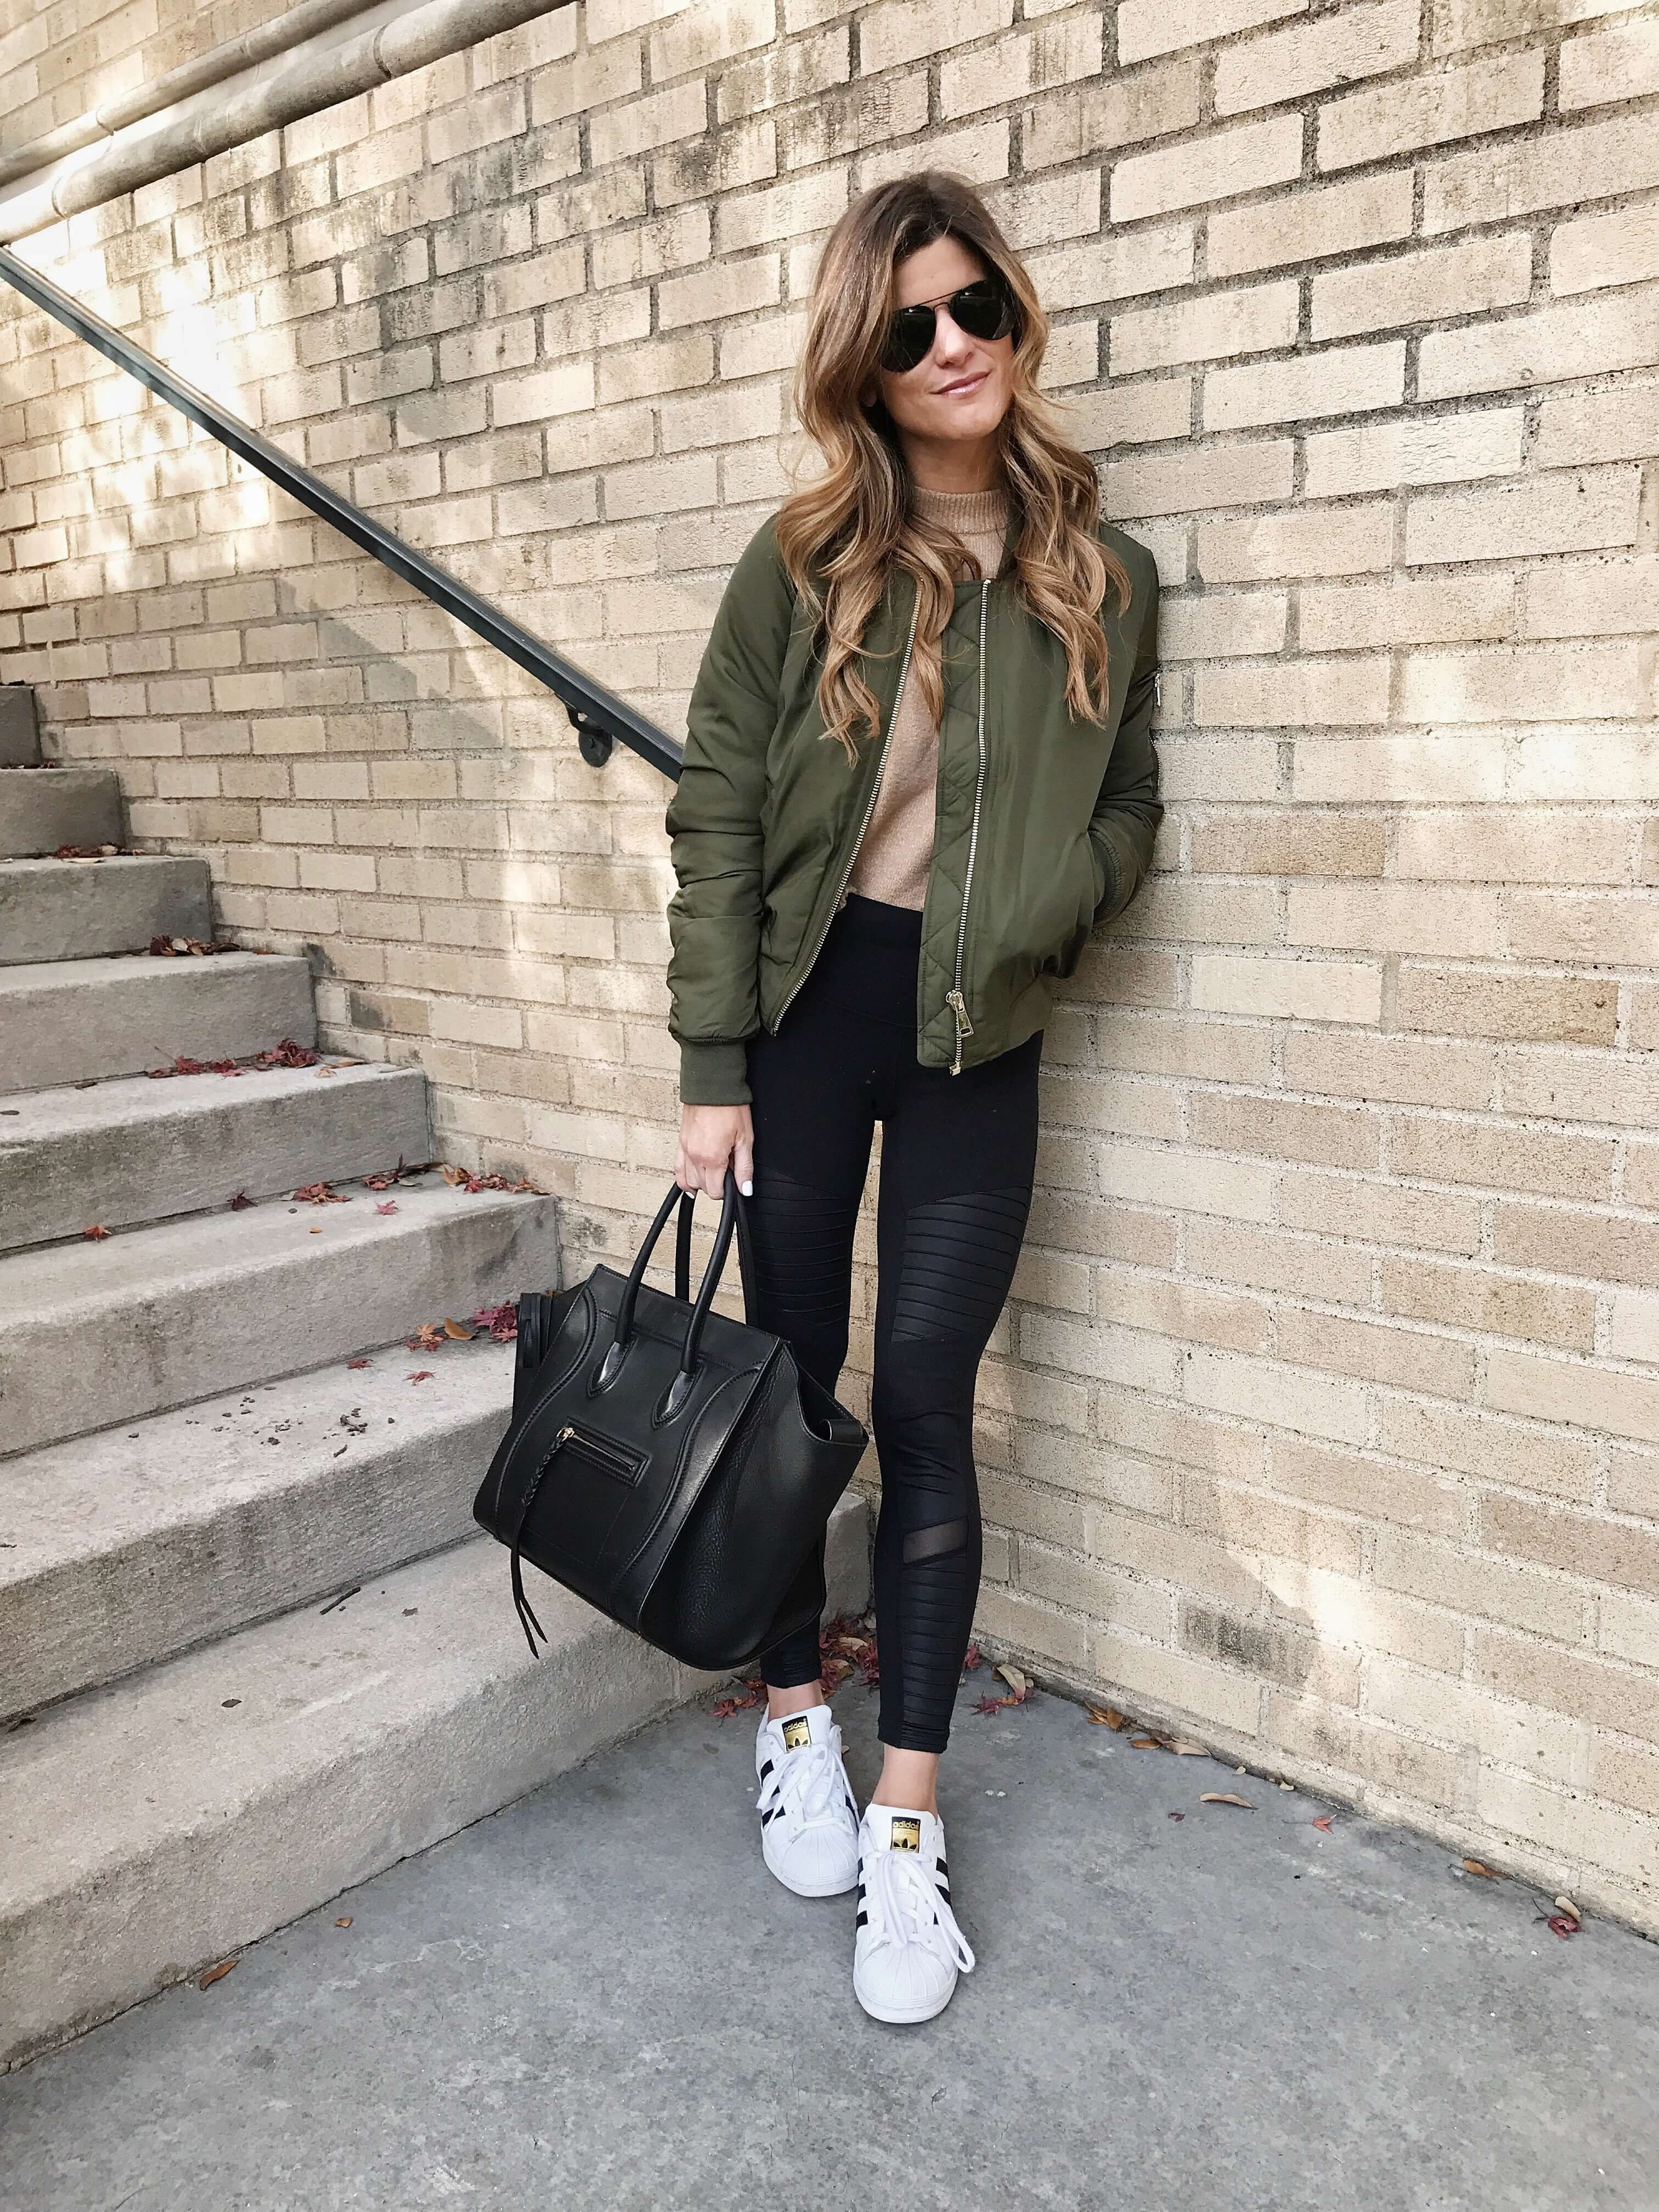 Party outfits for olive jacket outfit, Flight jacket